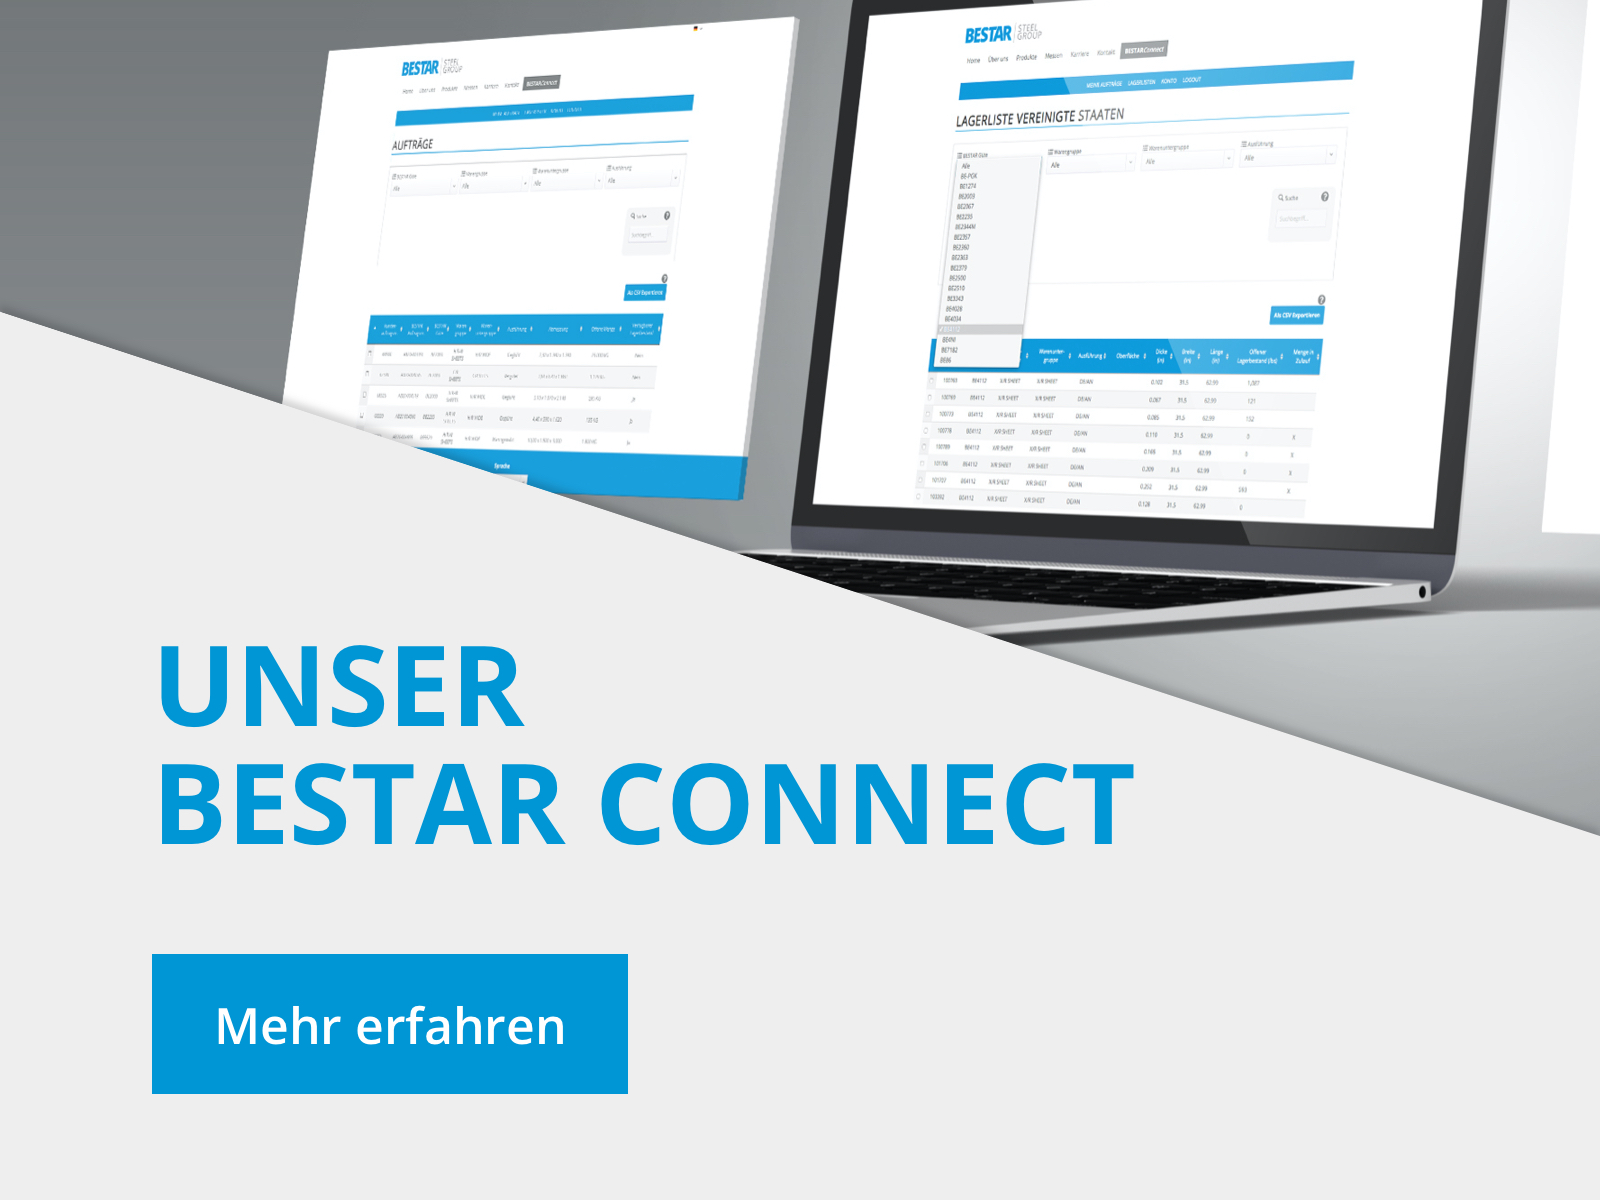 Unser BESTAR CONNECT